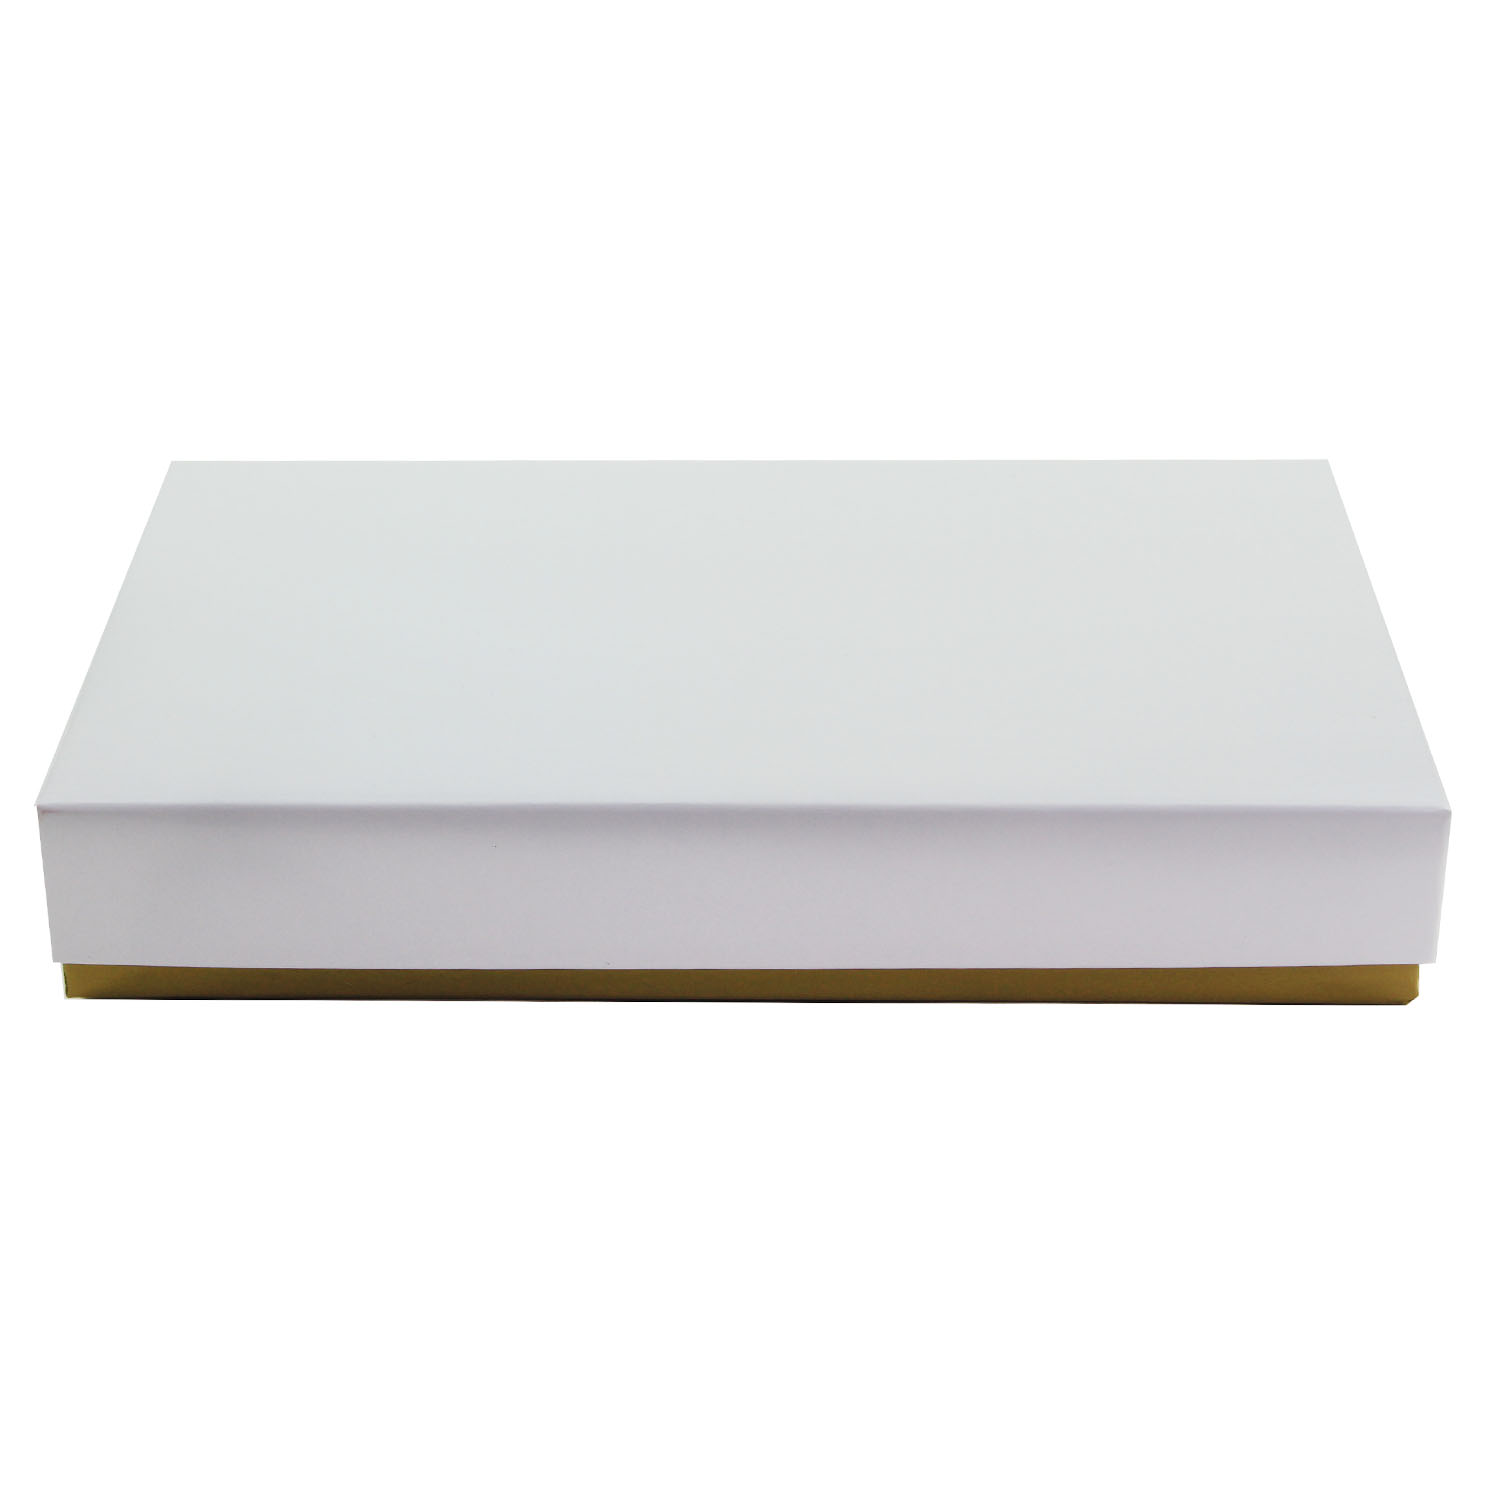 1/2 lb. White Candy Box with Gold Base